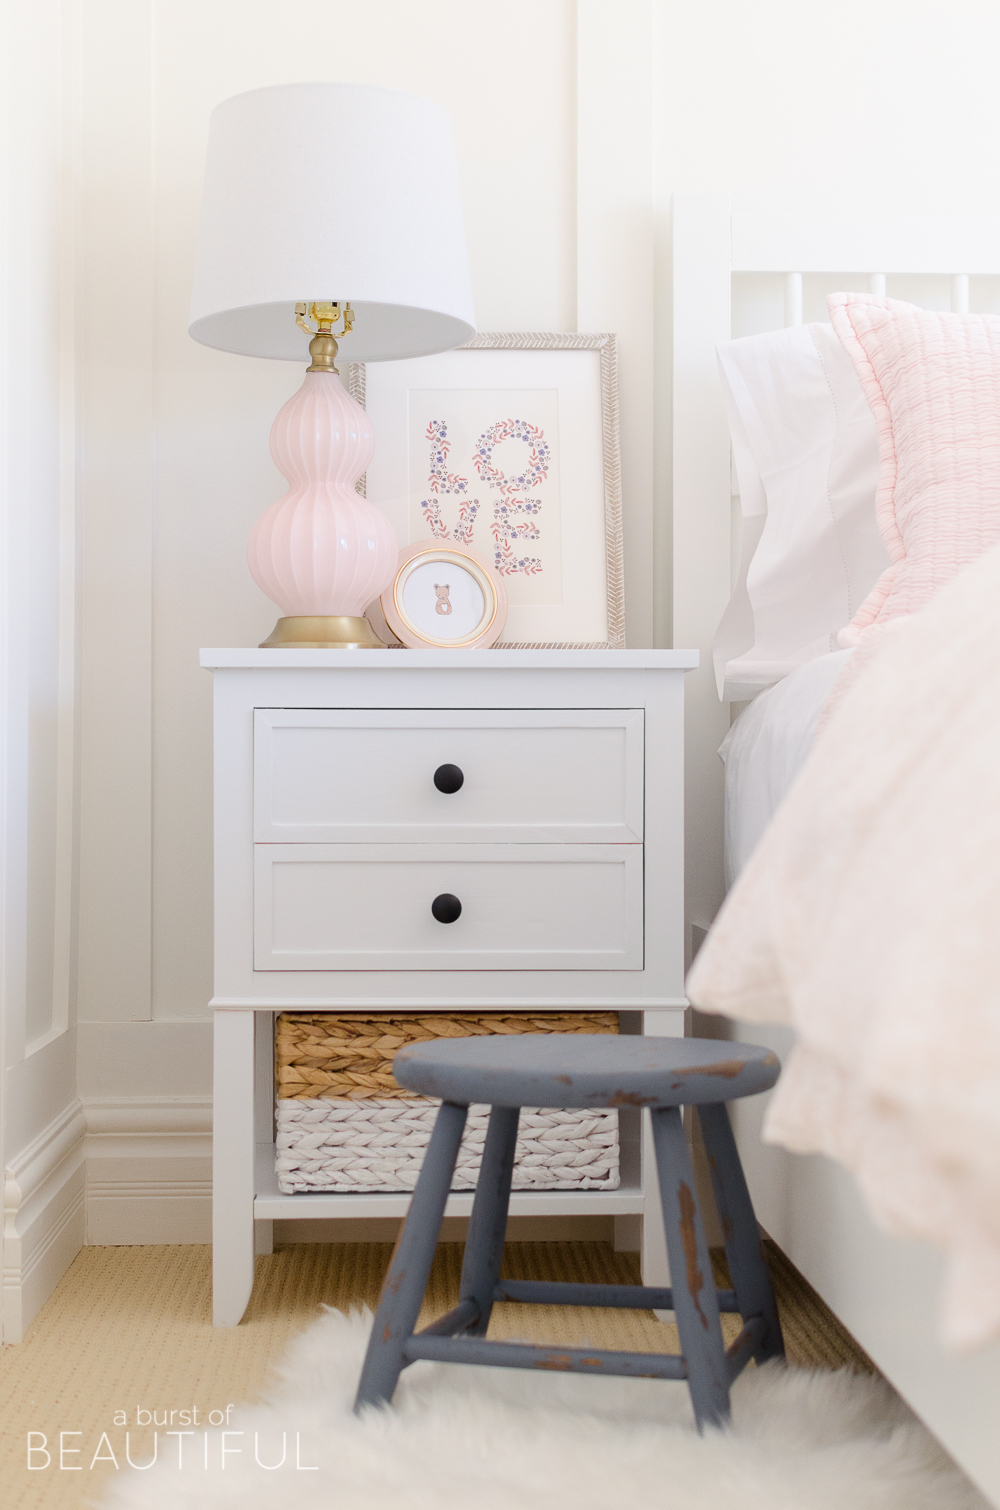 Free plans to build 2-drawer end table with shelf